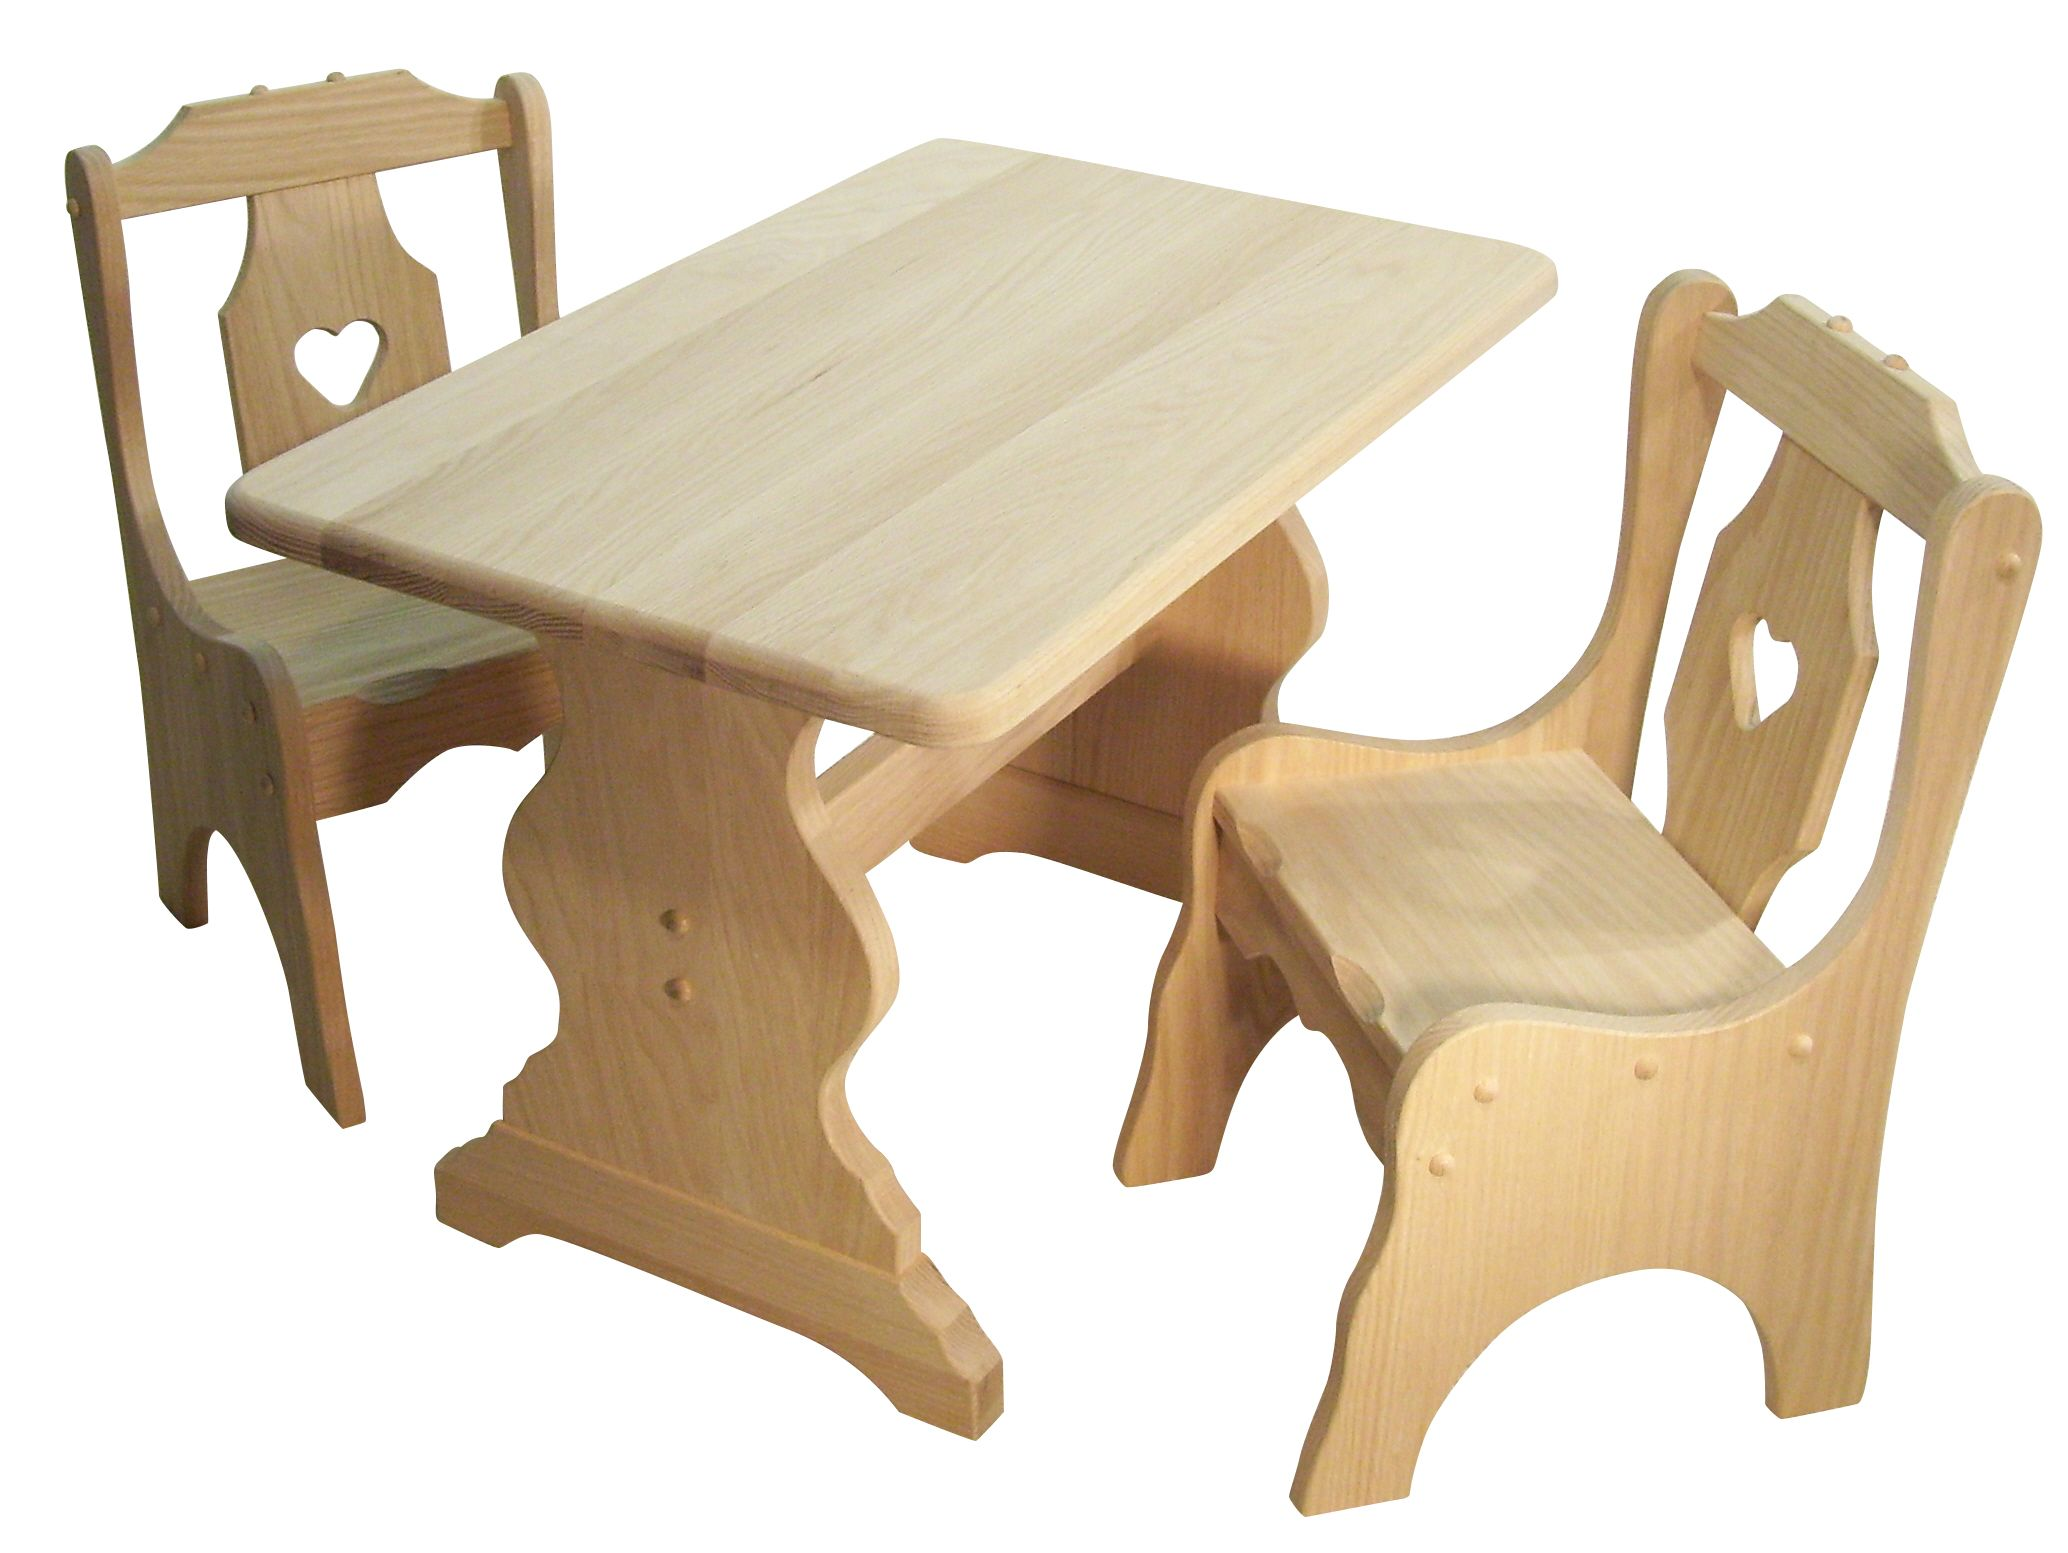 Childs Table And Heart Chairs Solid Hardwood Kids Furniture Finishes And Stains Customizable Amish Furniture Childrens Table Childrens Furniture